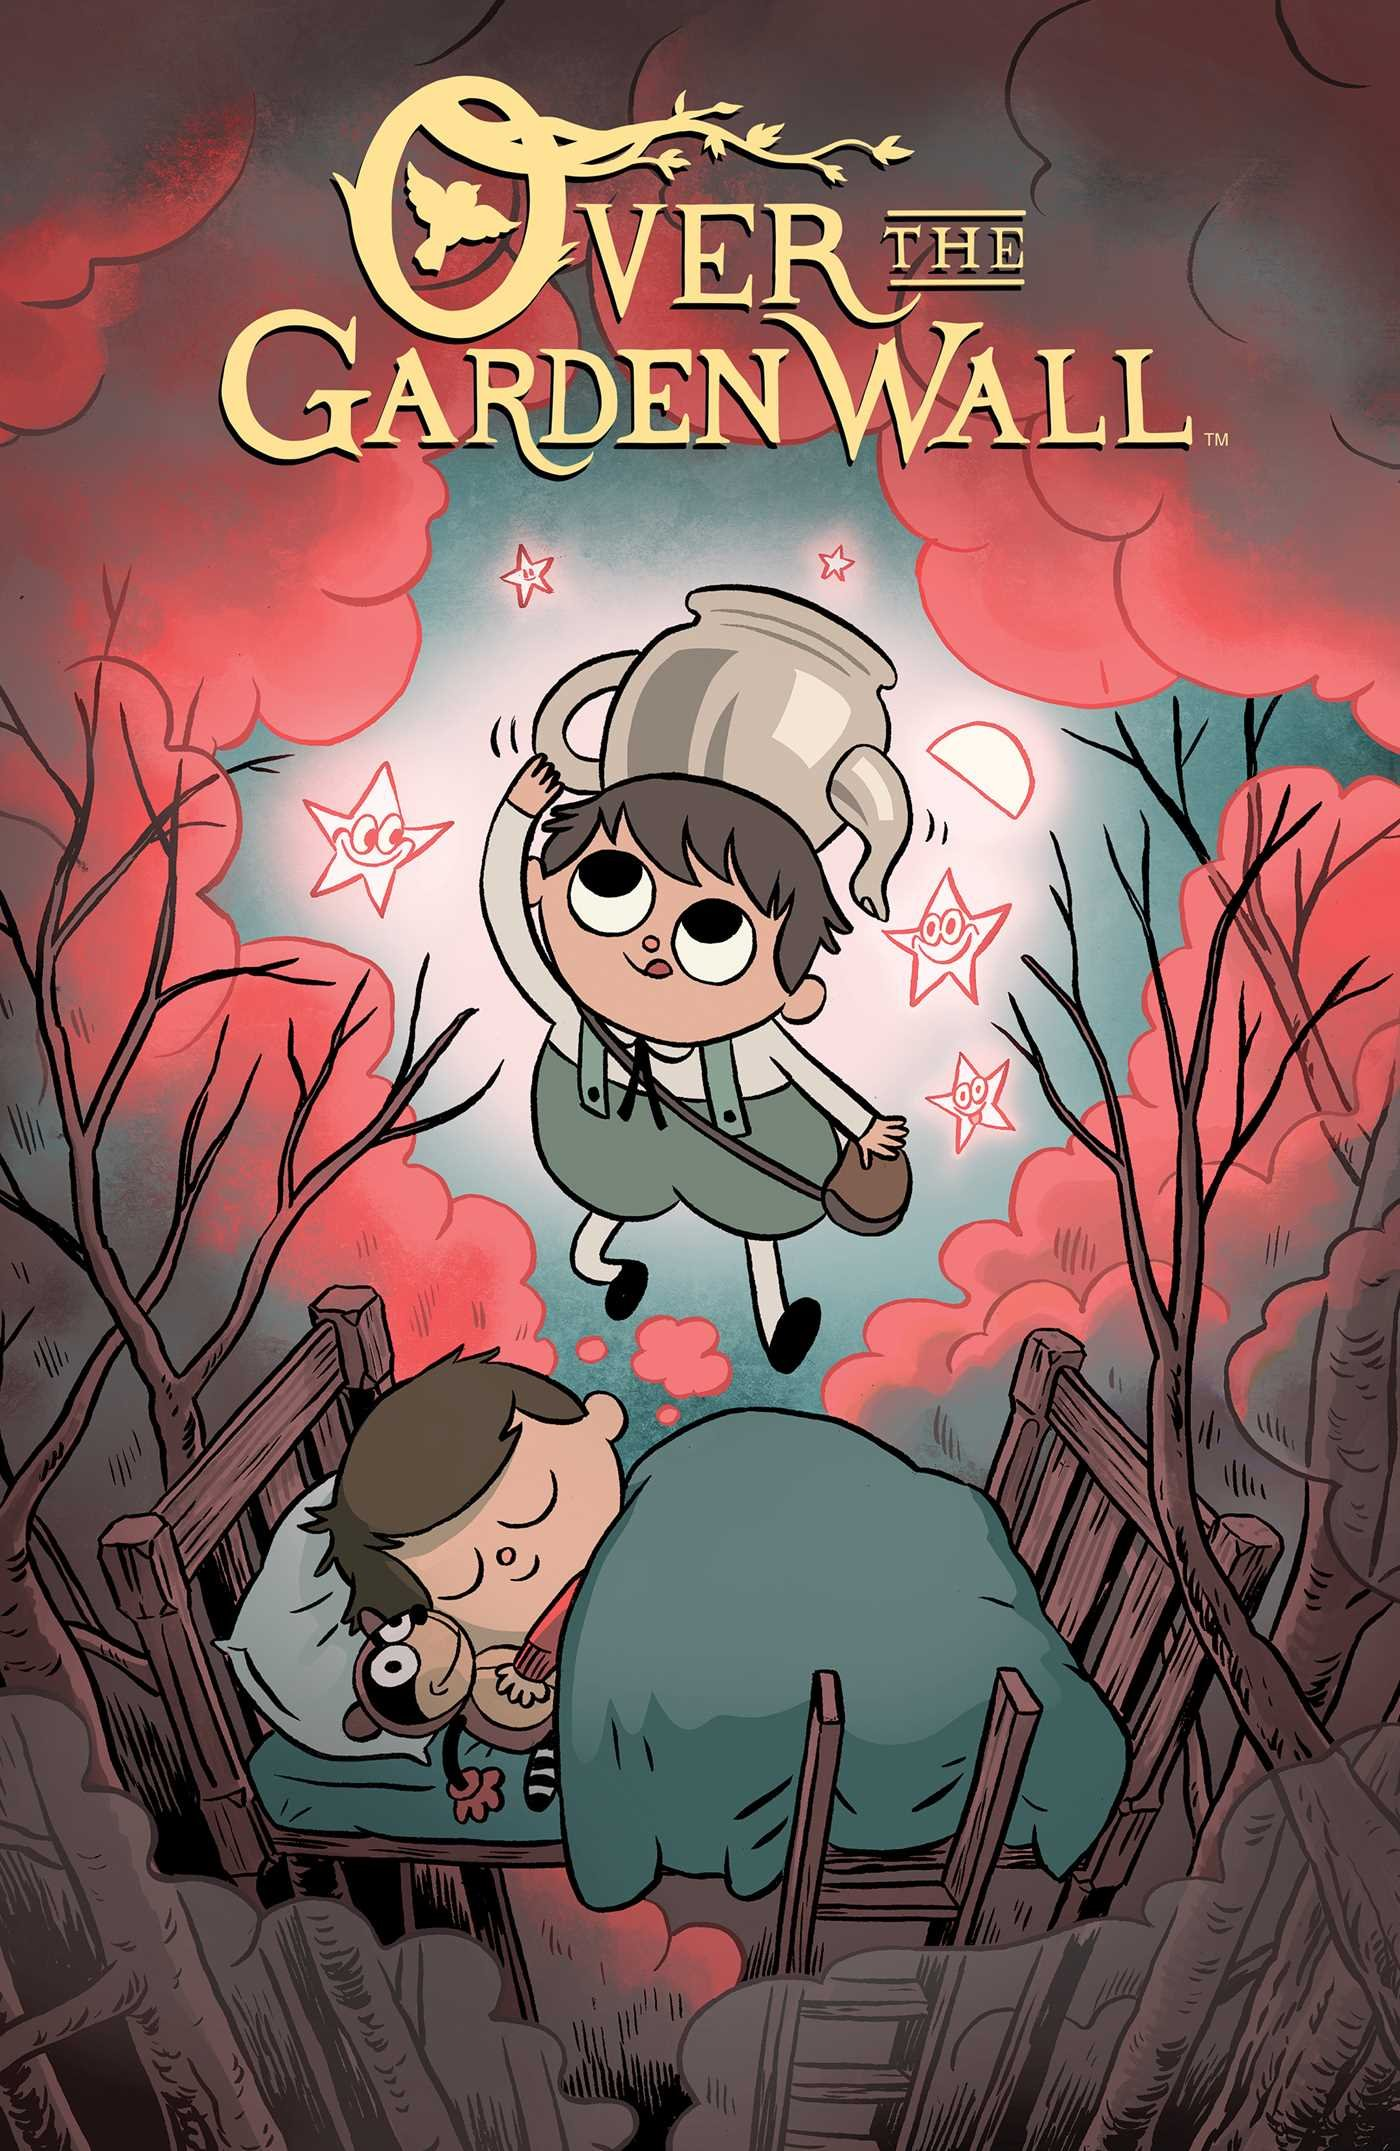 Amazon.com: Over The Garden Wall Vol. 1 (1) (9781608869404): Campbell, Jim,  Levari, Amalia, McHale, Pat, McGee, Cara: Books